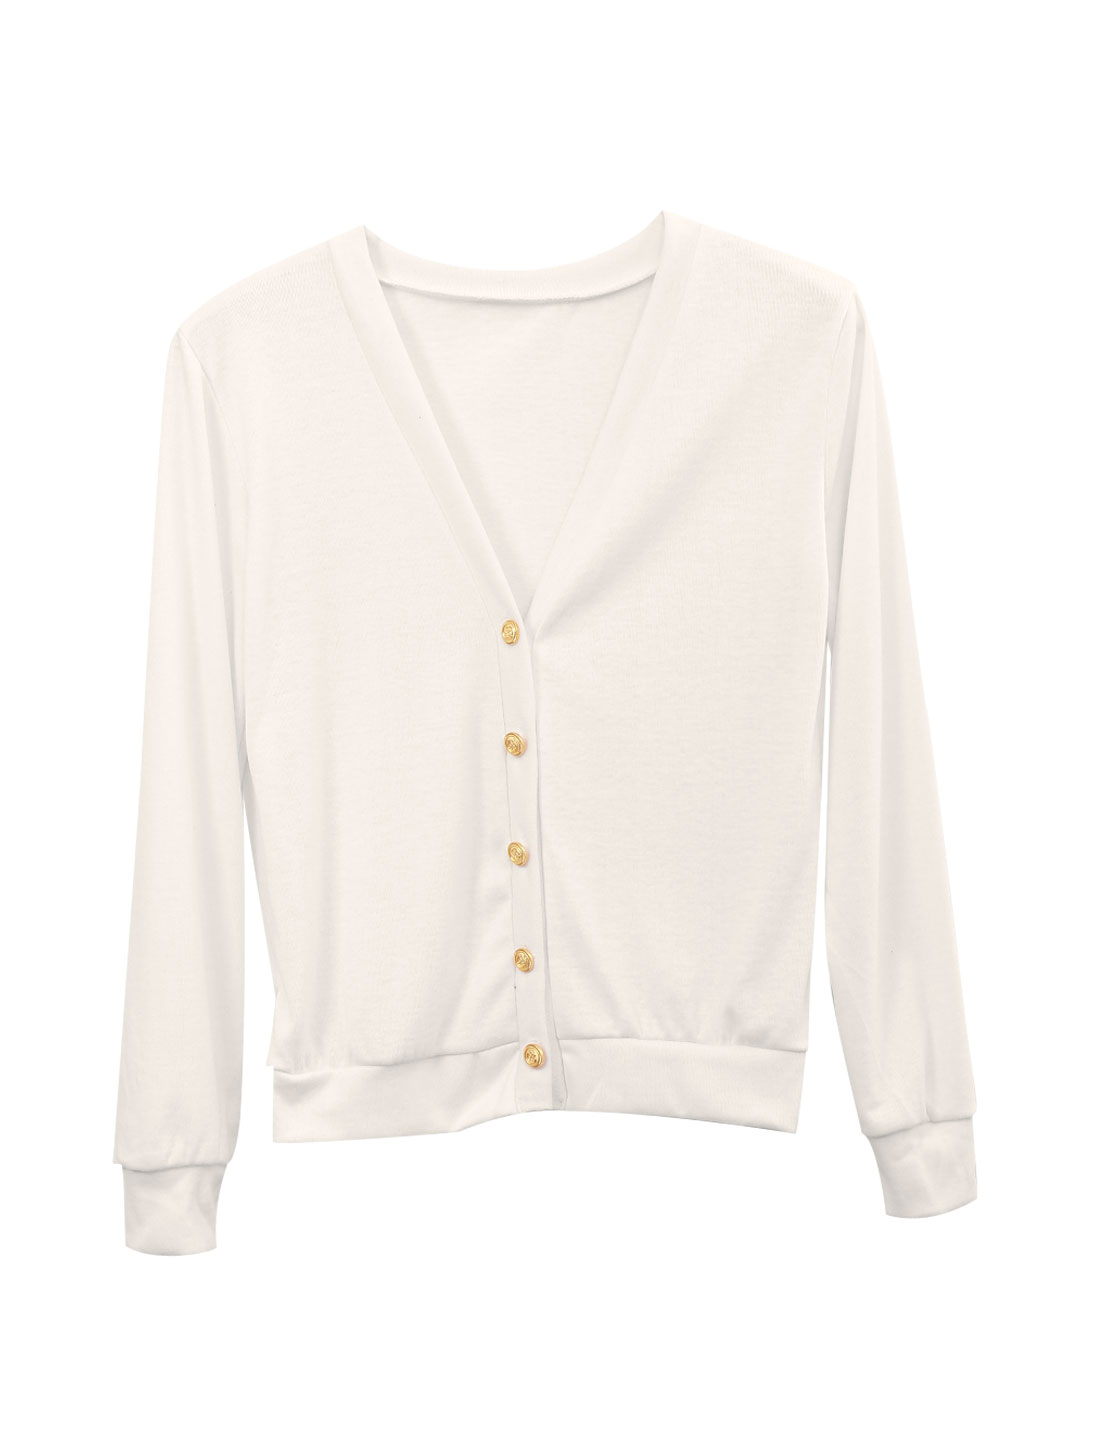 New Style Button Closure Front Long Sleeve Casual Cardigan for Lady White XS